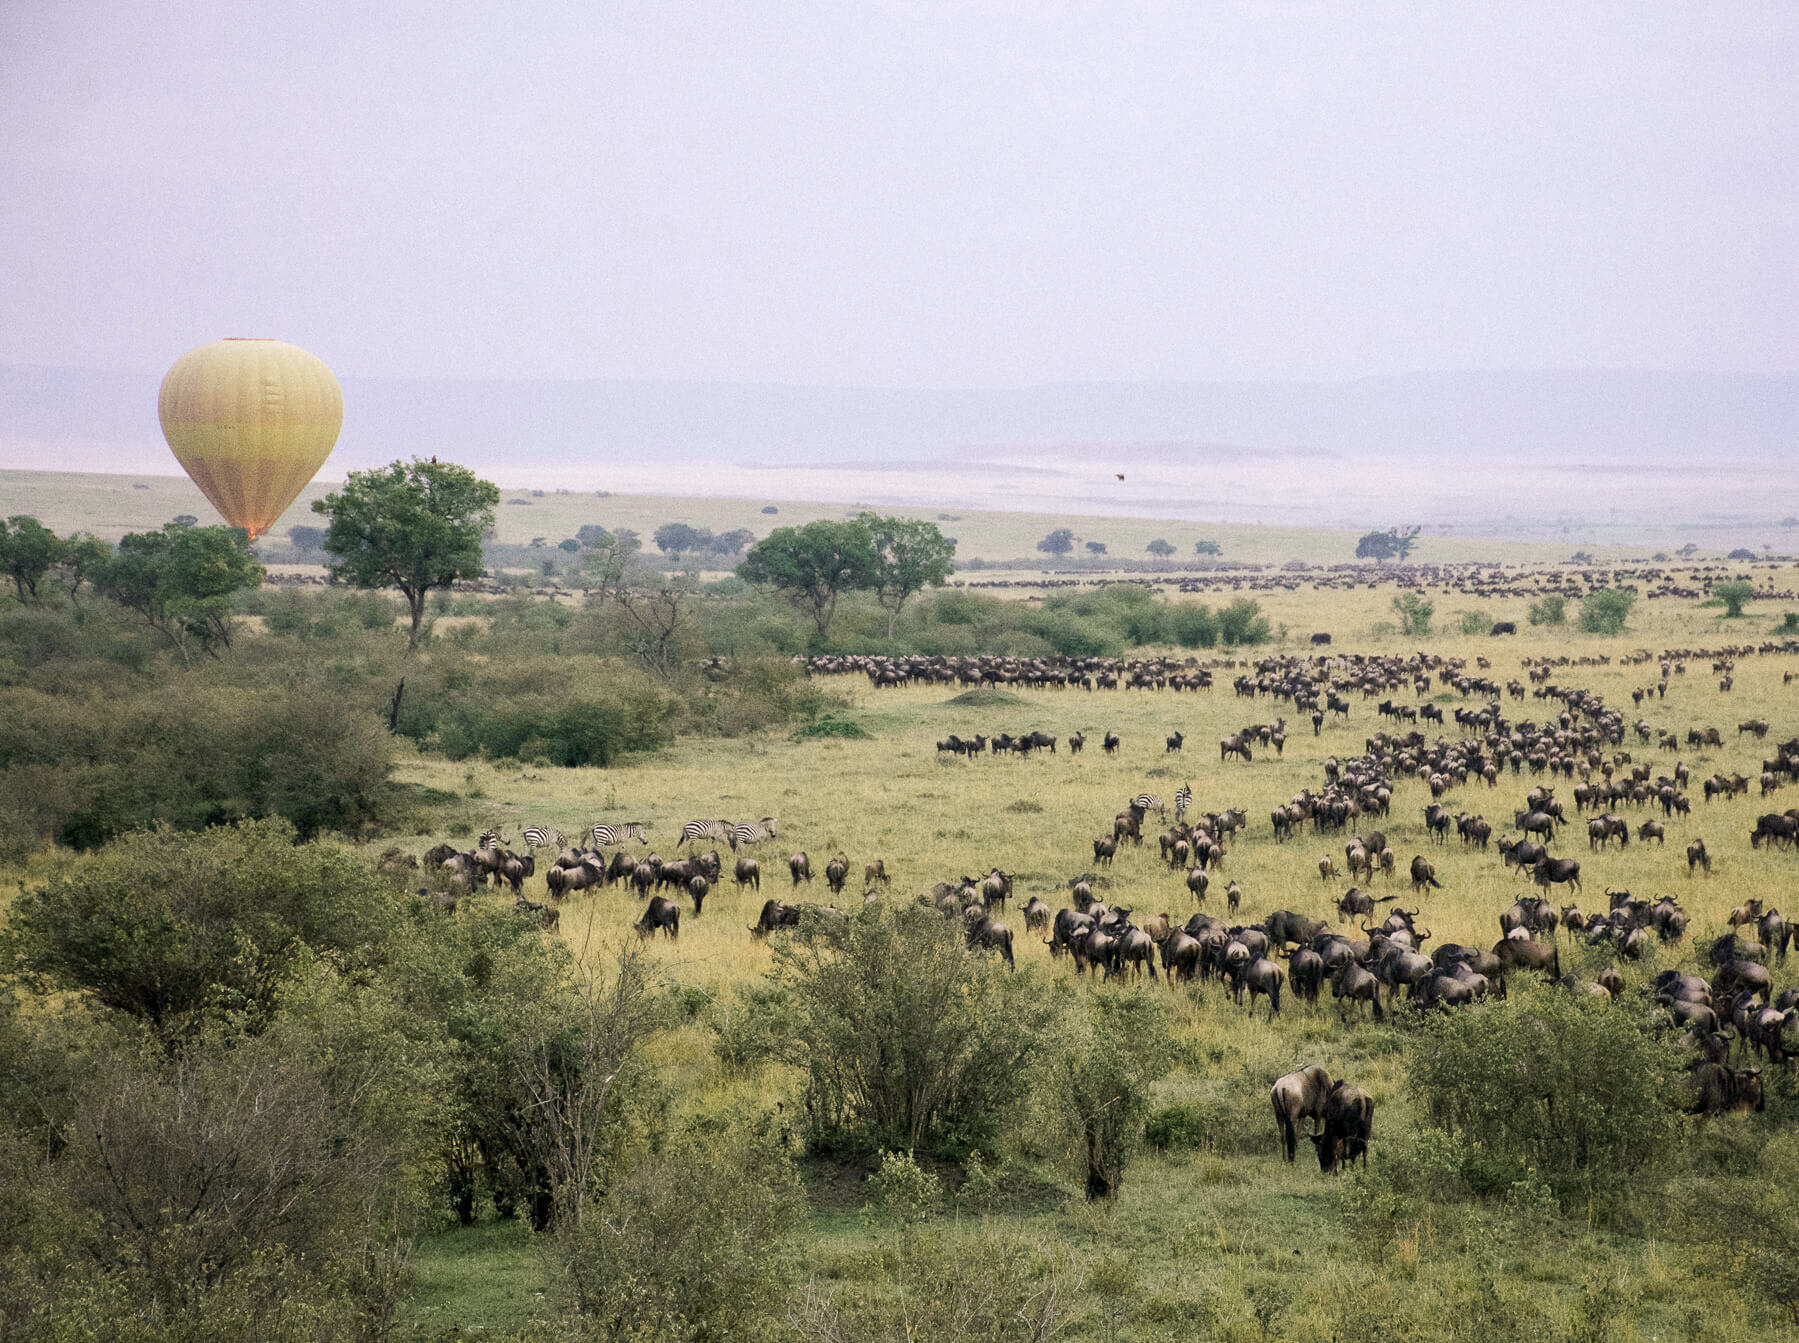 Hot air balloon flying over wildebeest migration